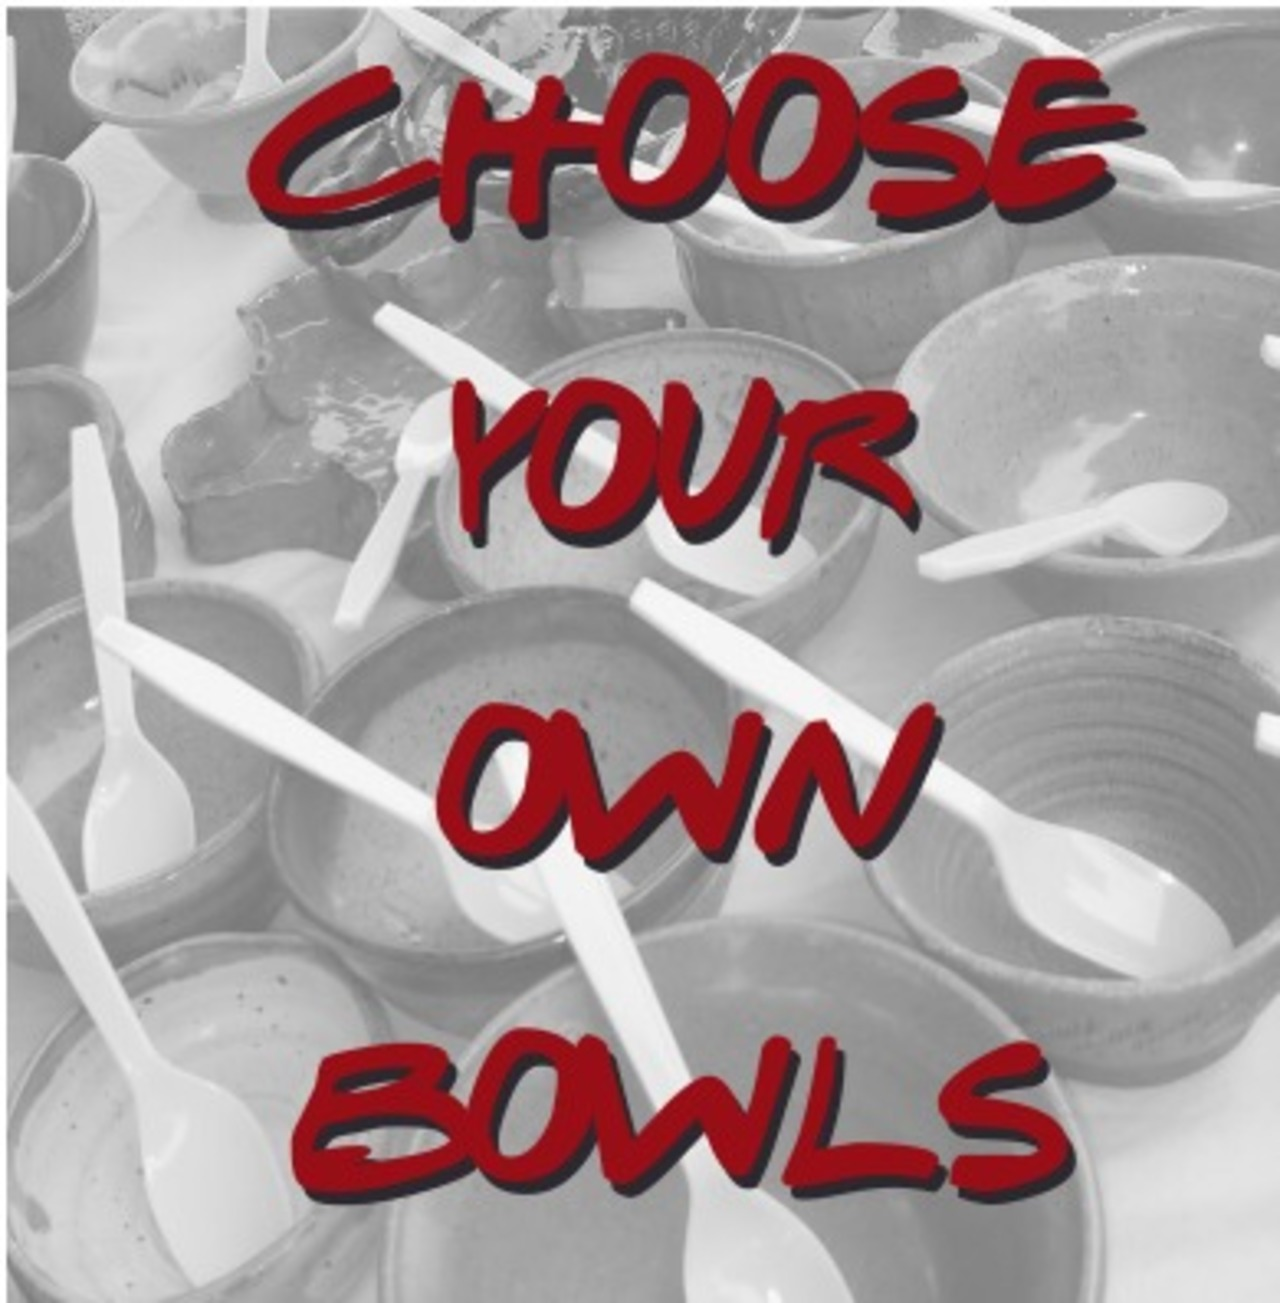 Your Choice of Two Pottery Bowls